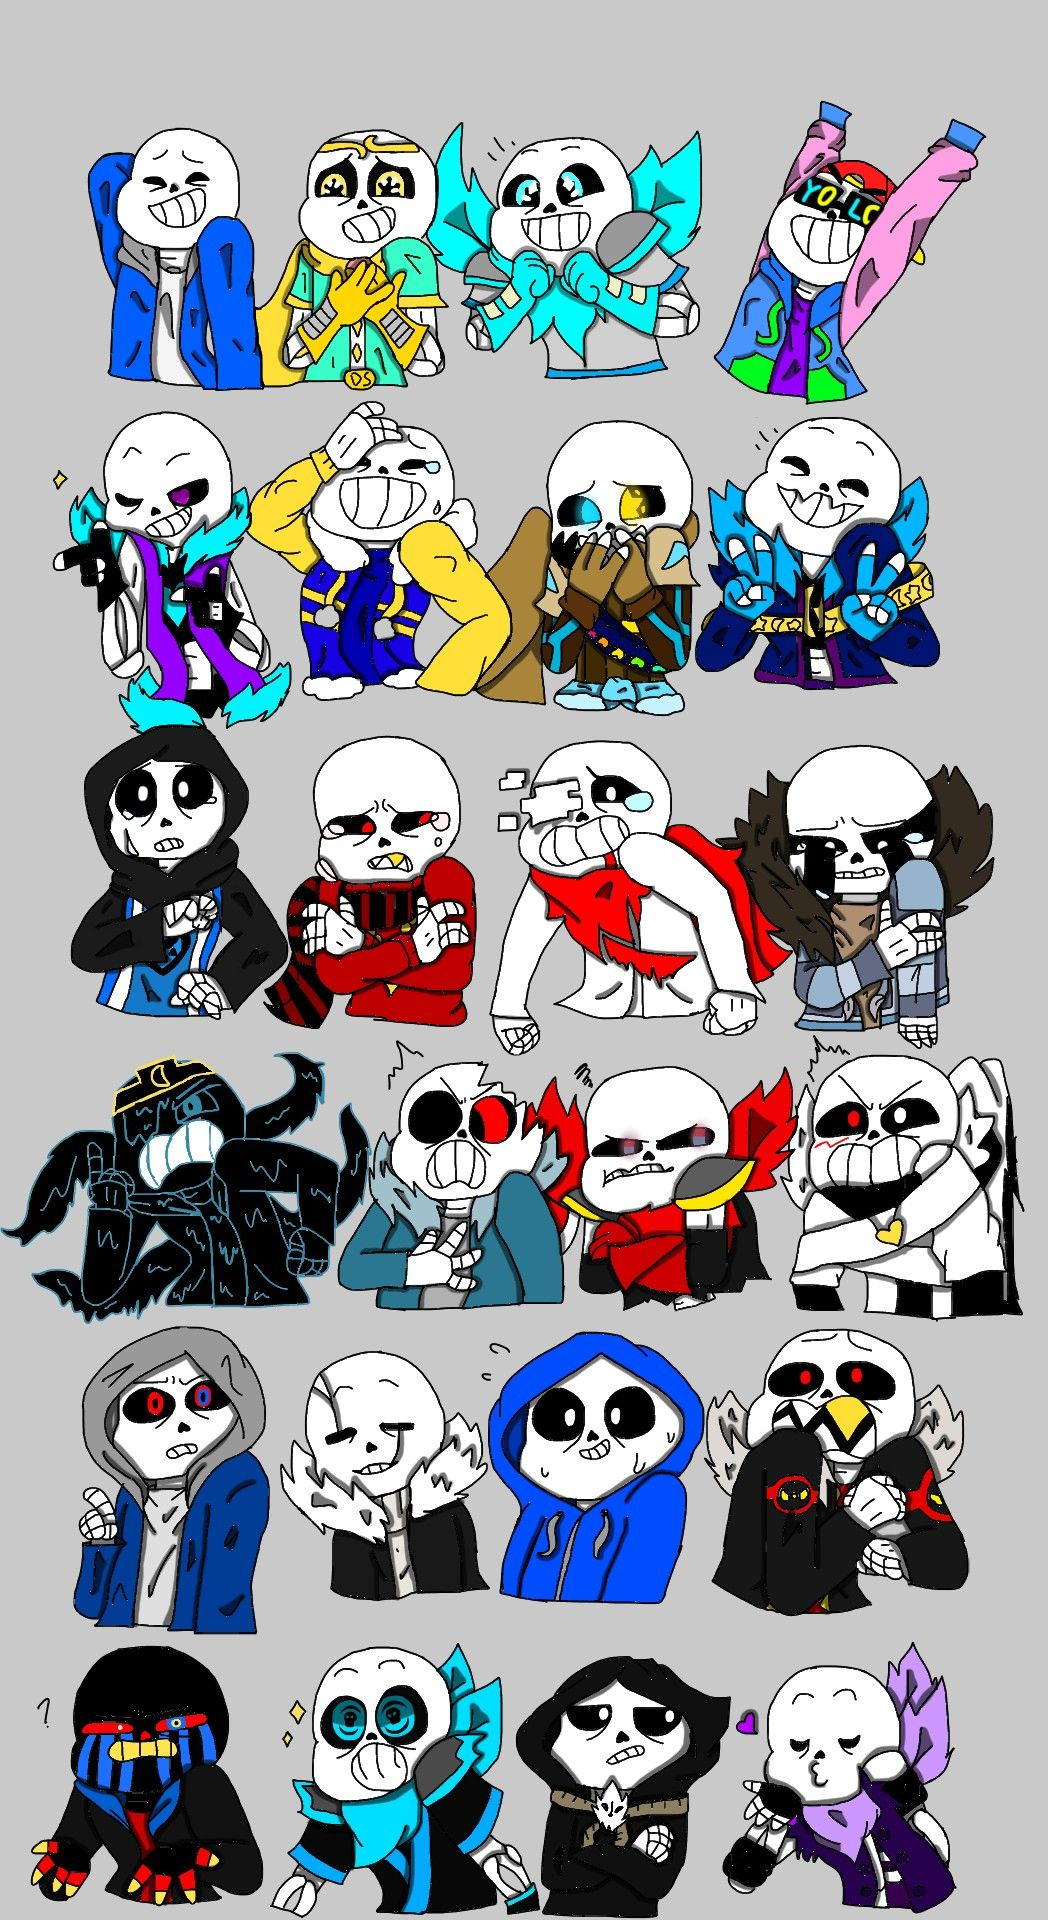 Emoticon meme with sans from different aus made by